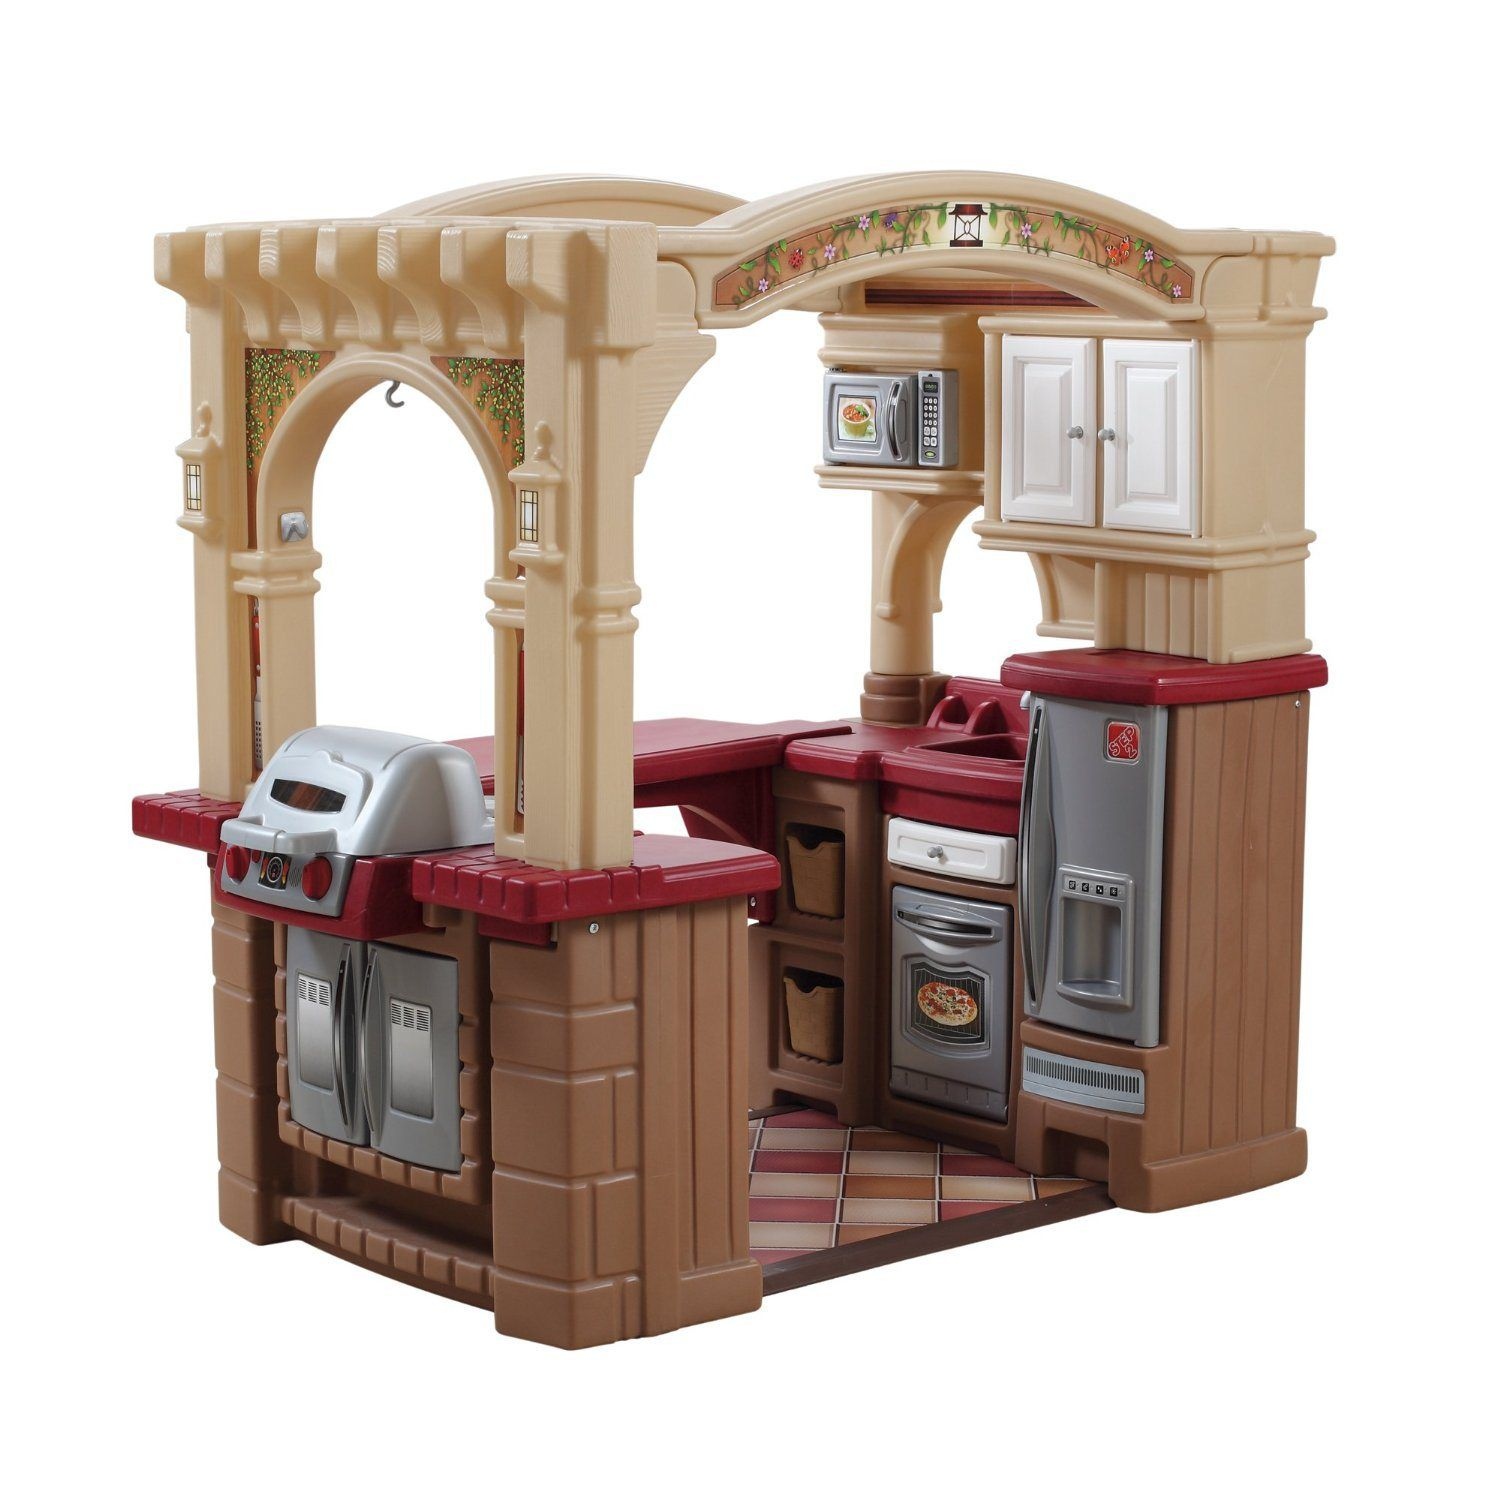 Big Step 2 Kitchen For Kids Two Kids Can Play In This Toy Kids Play Kitchen Play Kitchen Sets Pretend Play Kitchen